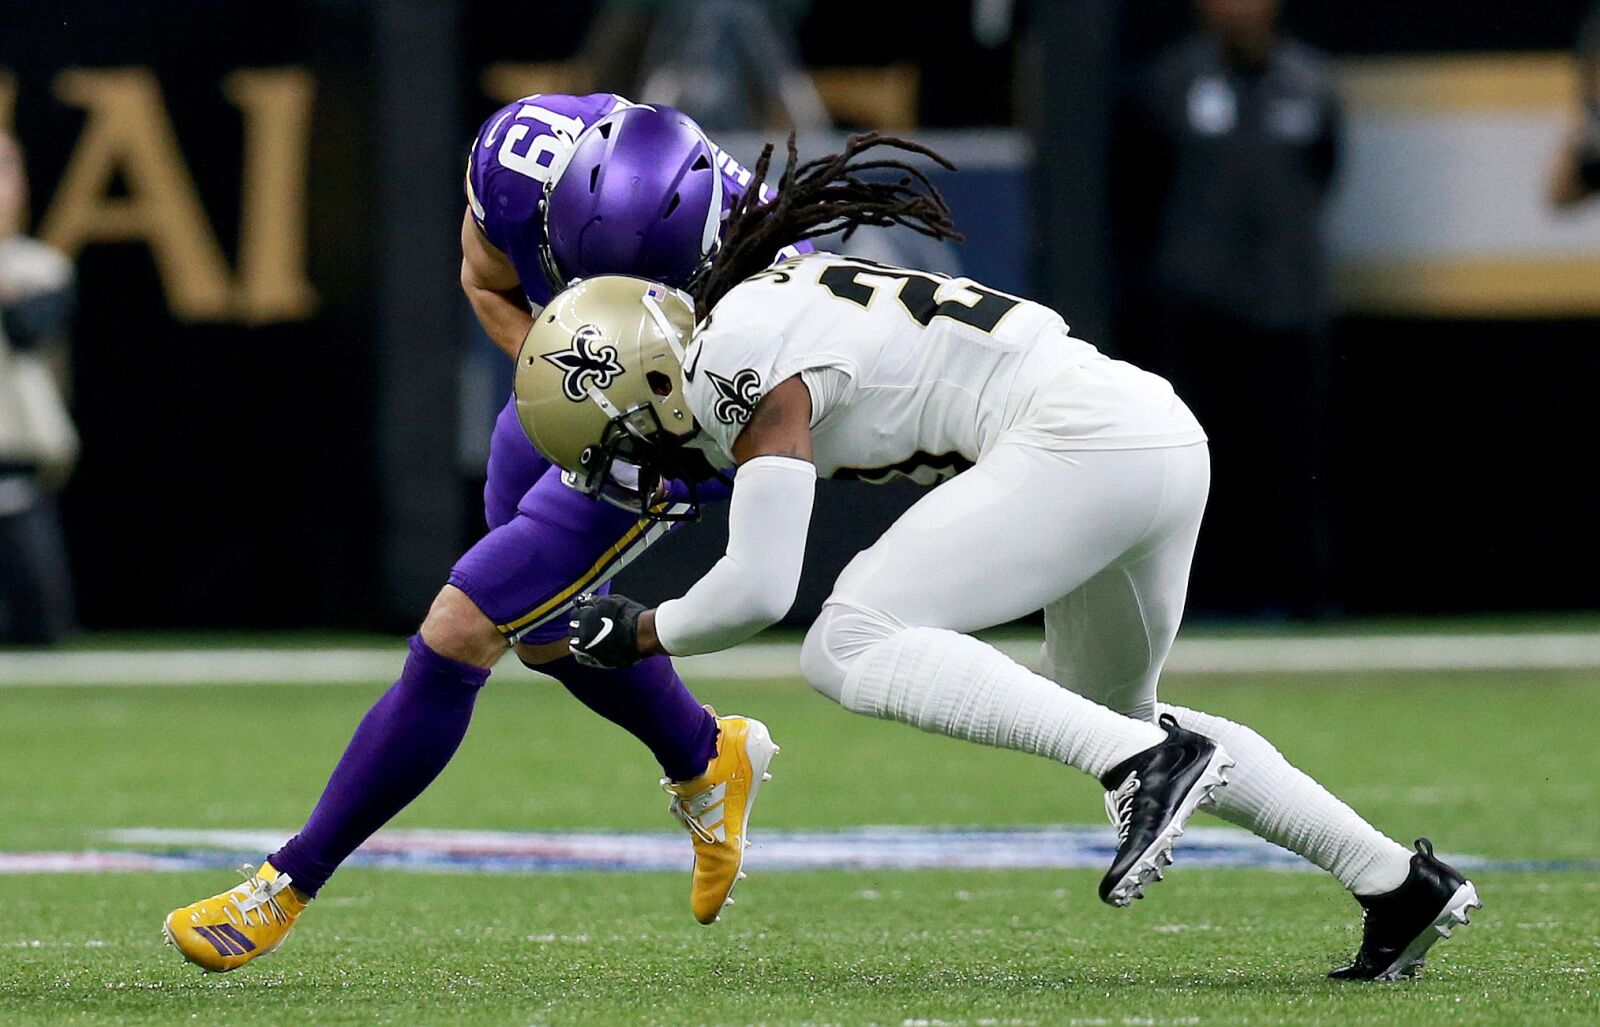 New Orleans Saints: Cornerback will be the No. 1 need entering 2020